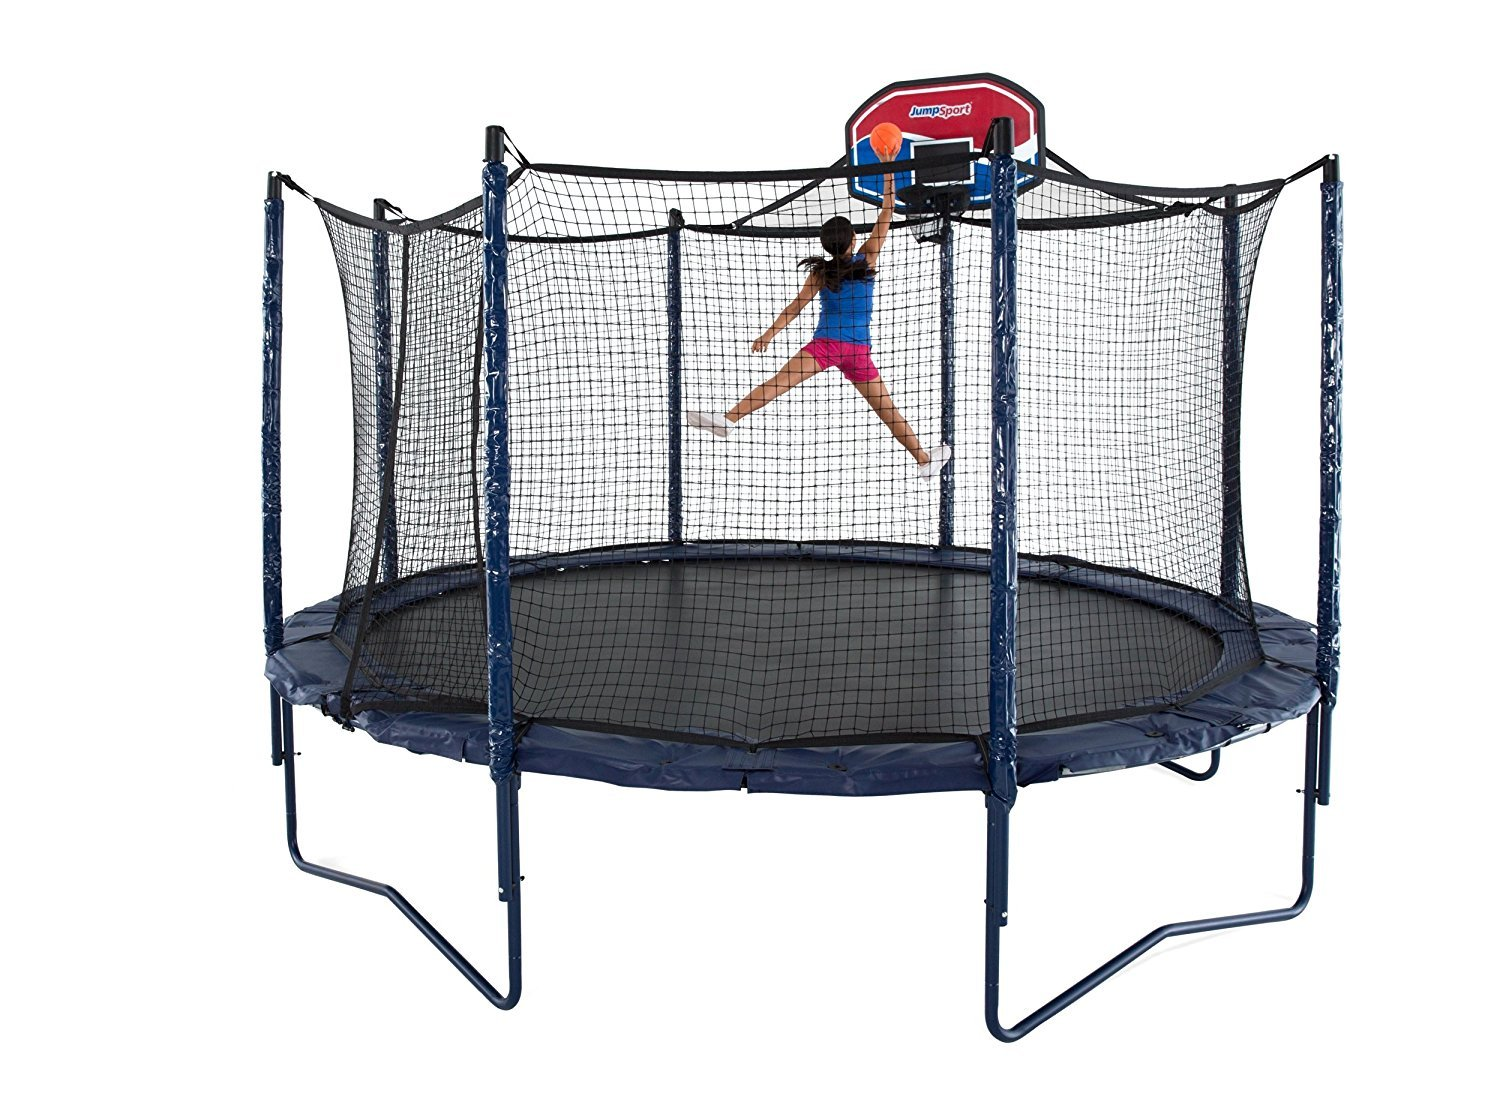 Best Trampoline with a Basketball Hoop (Must Read Before ...